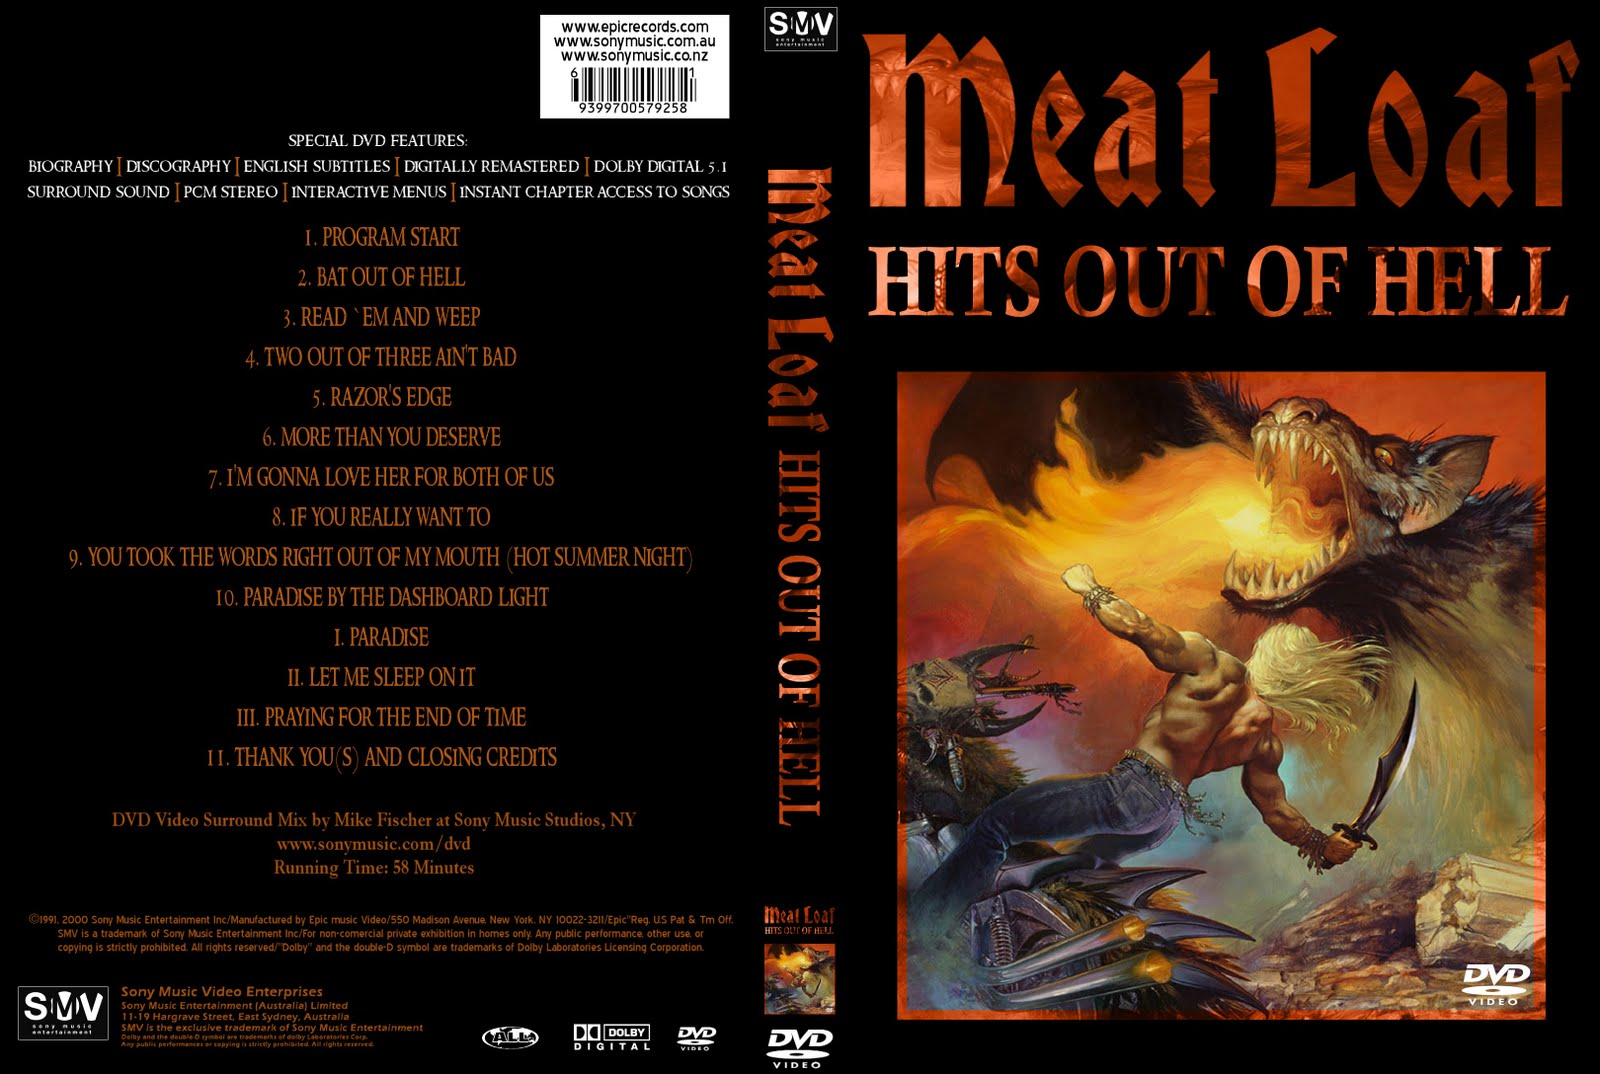 http://3.bp.blogspot.com/_brcl7Spzbn4/S-qg1XDhiWI/AAAAAAAAALc/1UDjMoD7vLE/s1600/Meatloaf-Hits-Out-Of-Hell.jpg